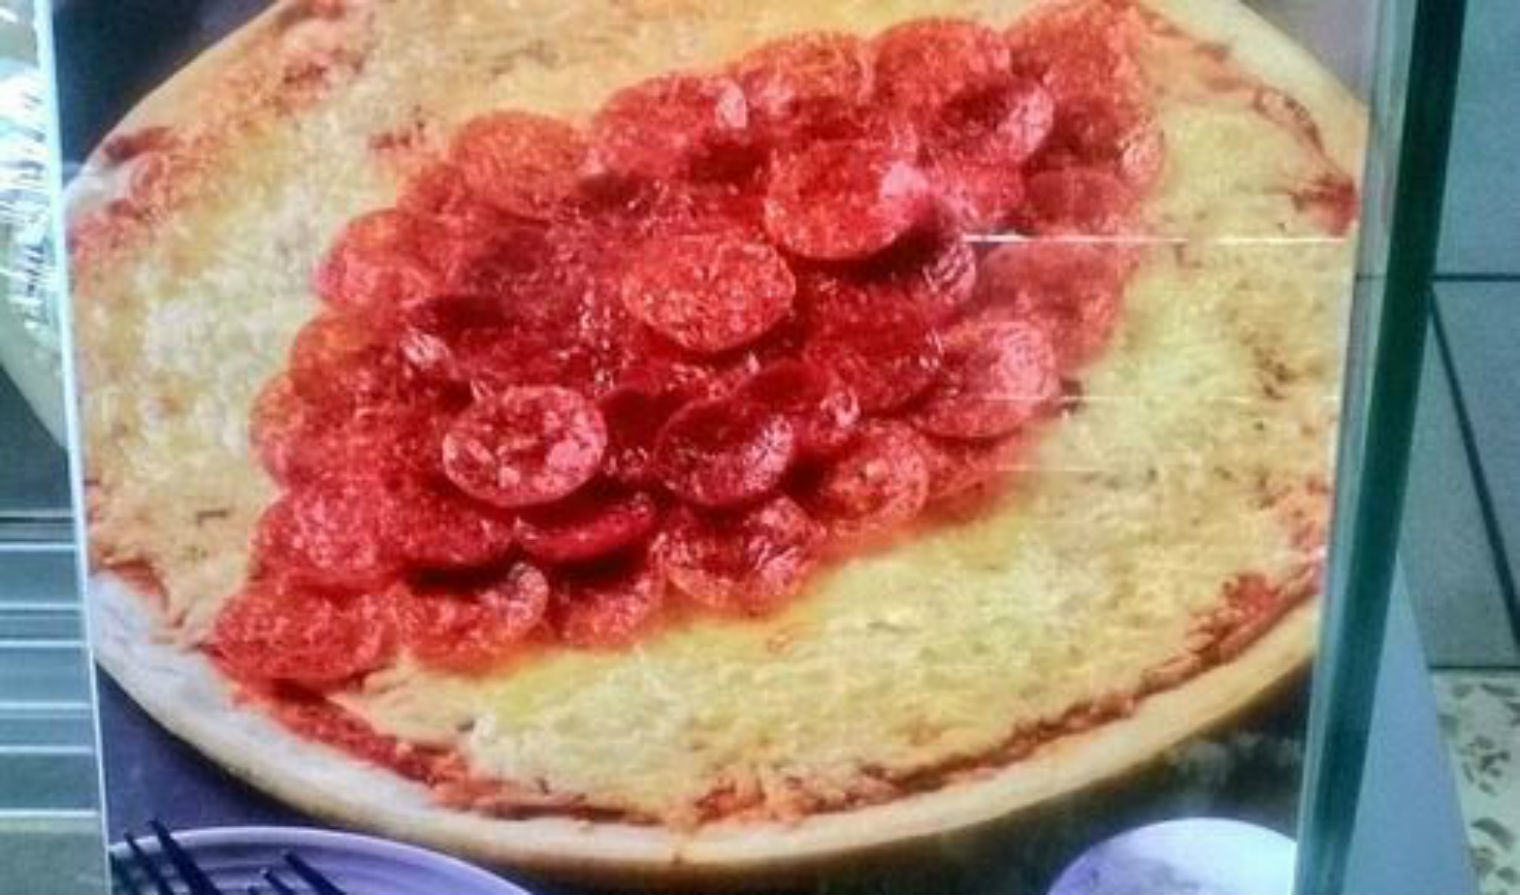 UNILAD vag14 Morrisons Release Rugby Pizza That Looks Like A Vagina, People Meltdown